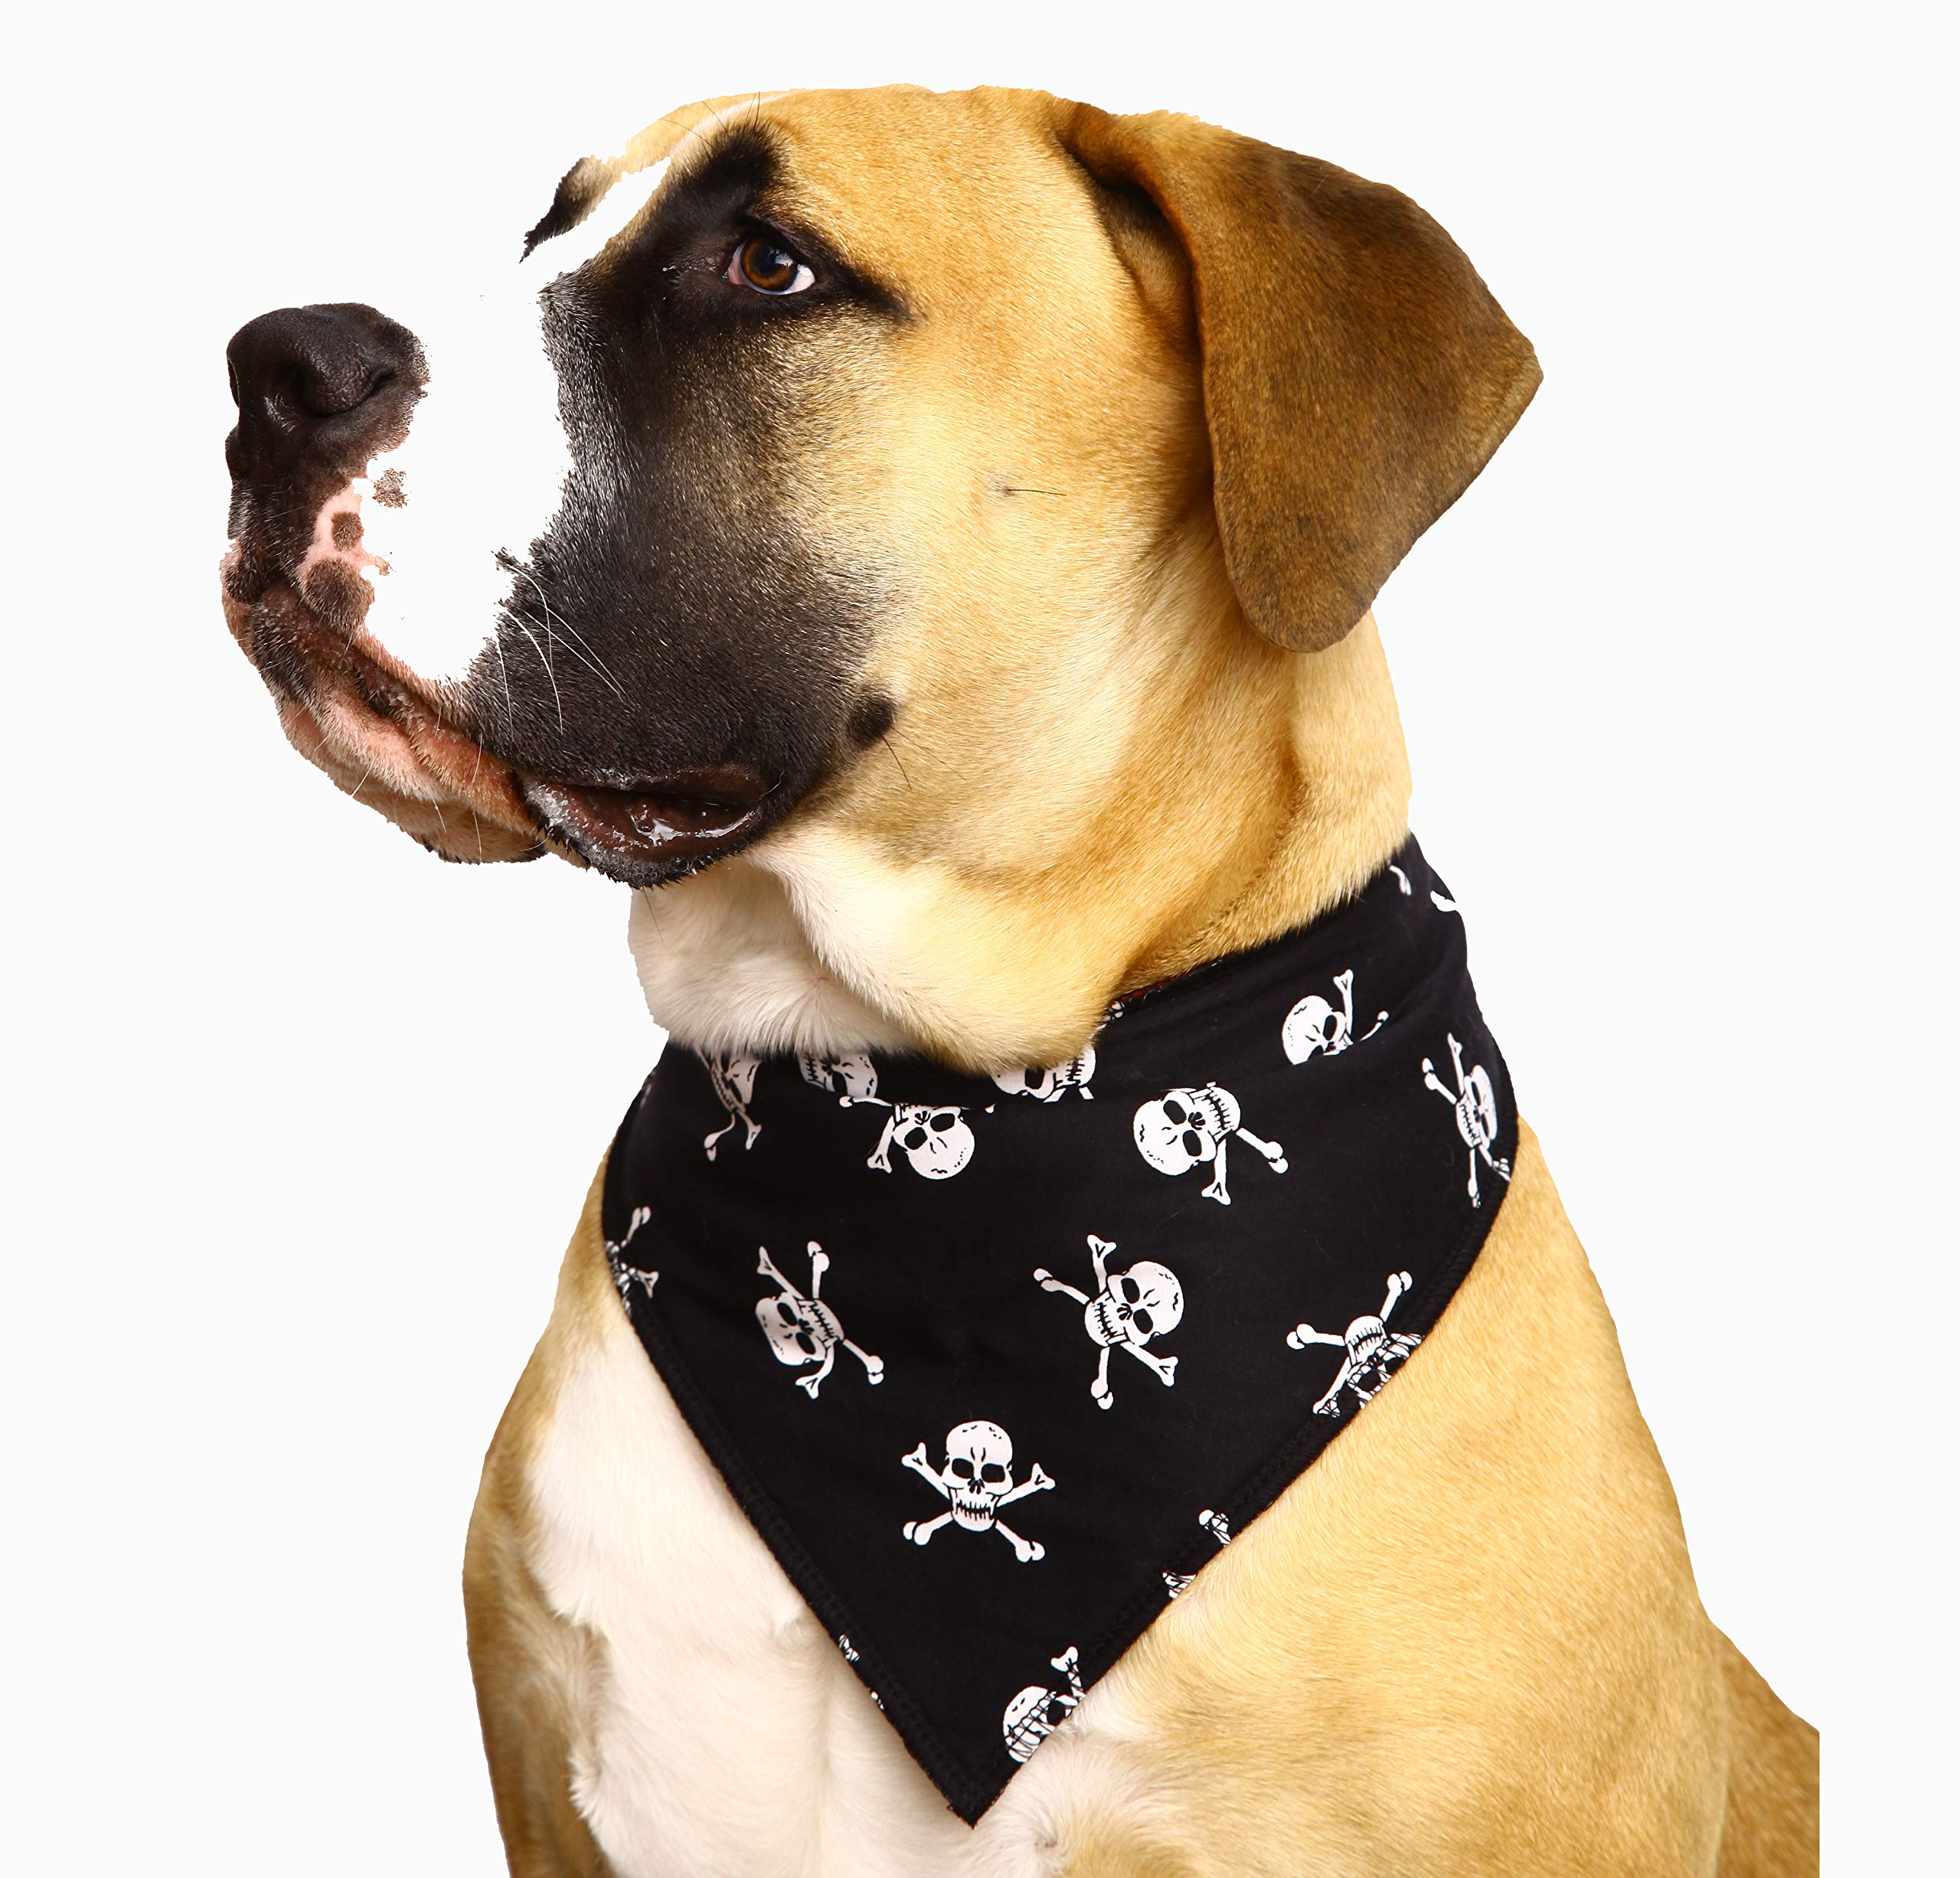 Spoilt Rotten Pets (S4) Branded White Skulls, Jolly Roger, Dog Bandana. Adjustable Neck to Fit Large to Extra/Large Dogs – Neck Size 23″ – 28″ Generally Fits Chow Chow, German Shepherd, St Bernard, Dogue de Bordeaux and Similar Sized Dogs.